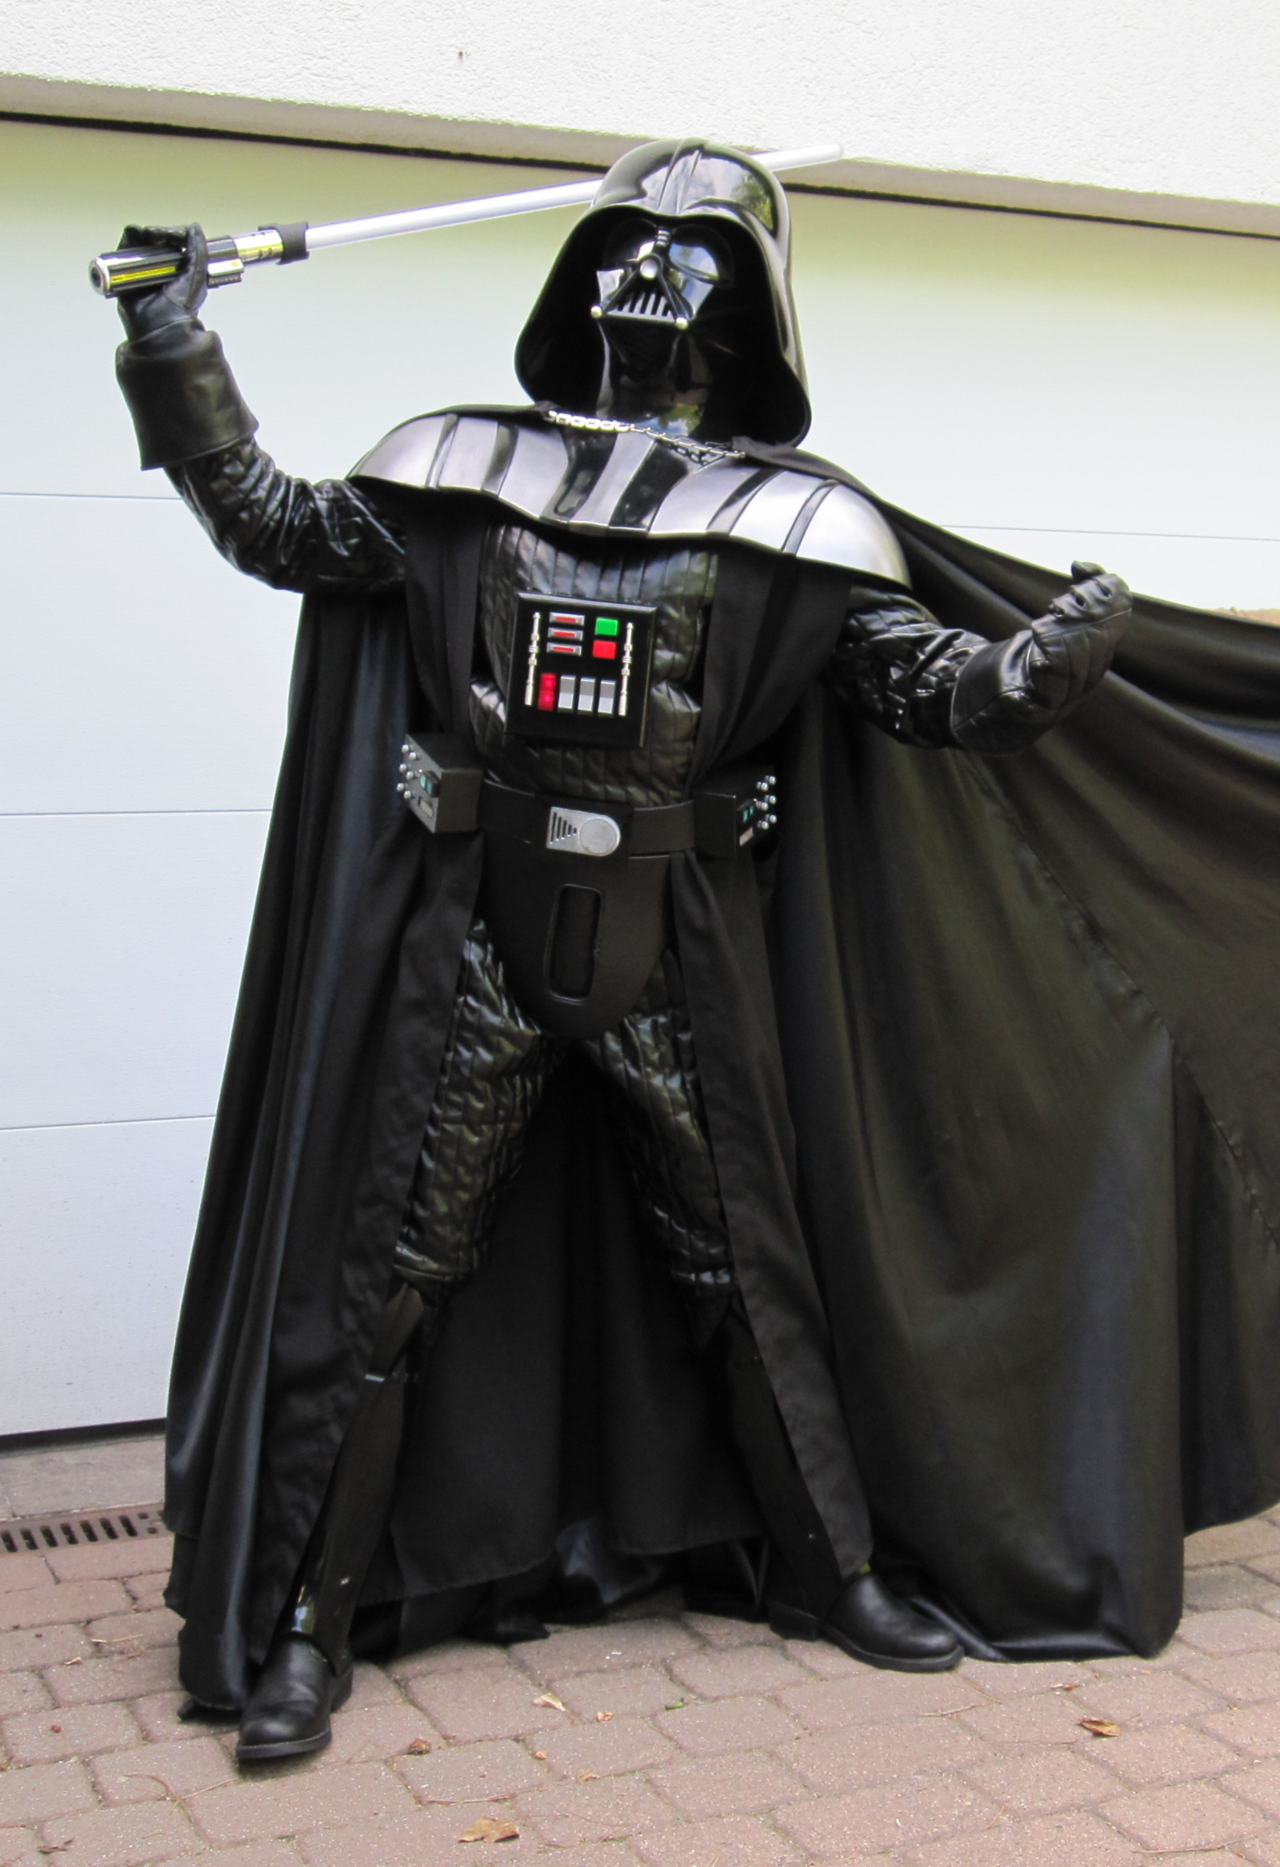 cosplay star wars darth vader cosplay pinterest star wars darth darth vader and cosplay. Black Bedroom Furniture Sets. Home Design Ideas